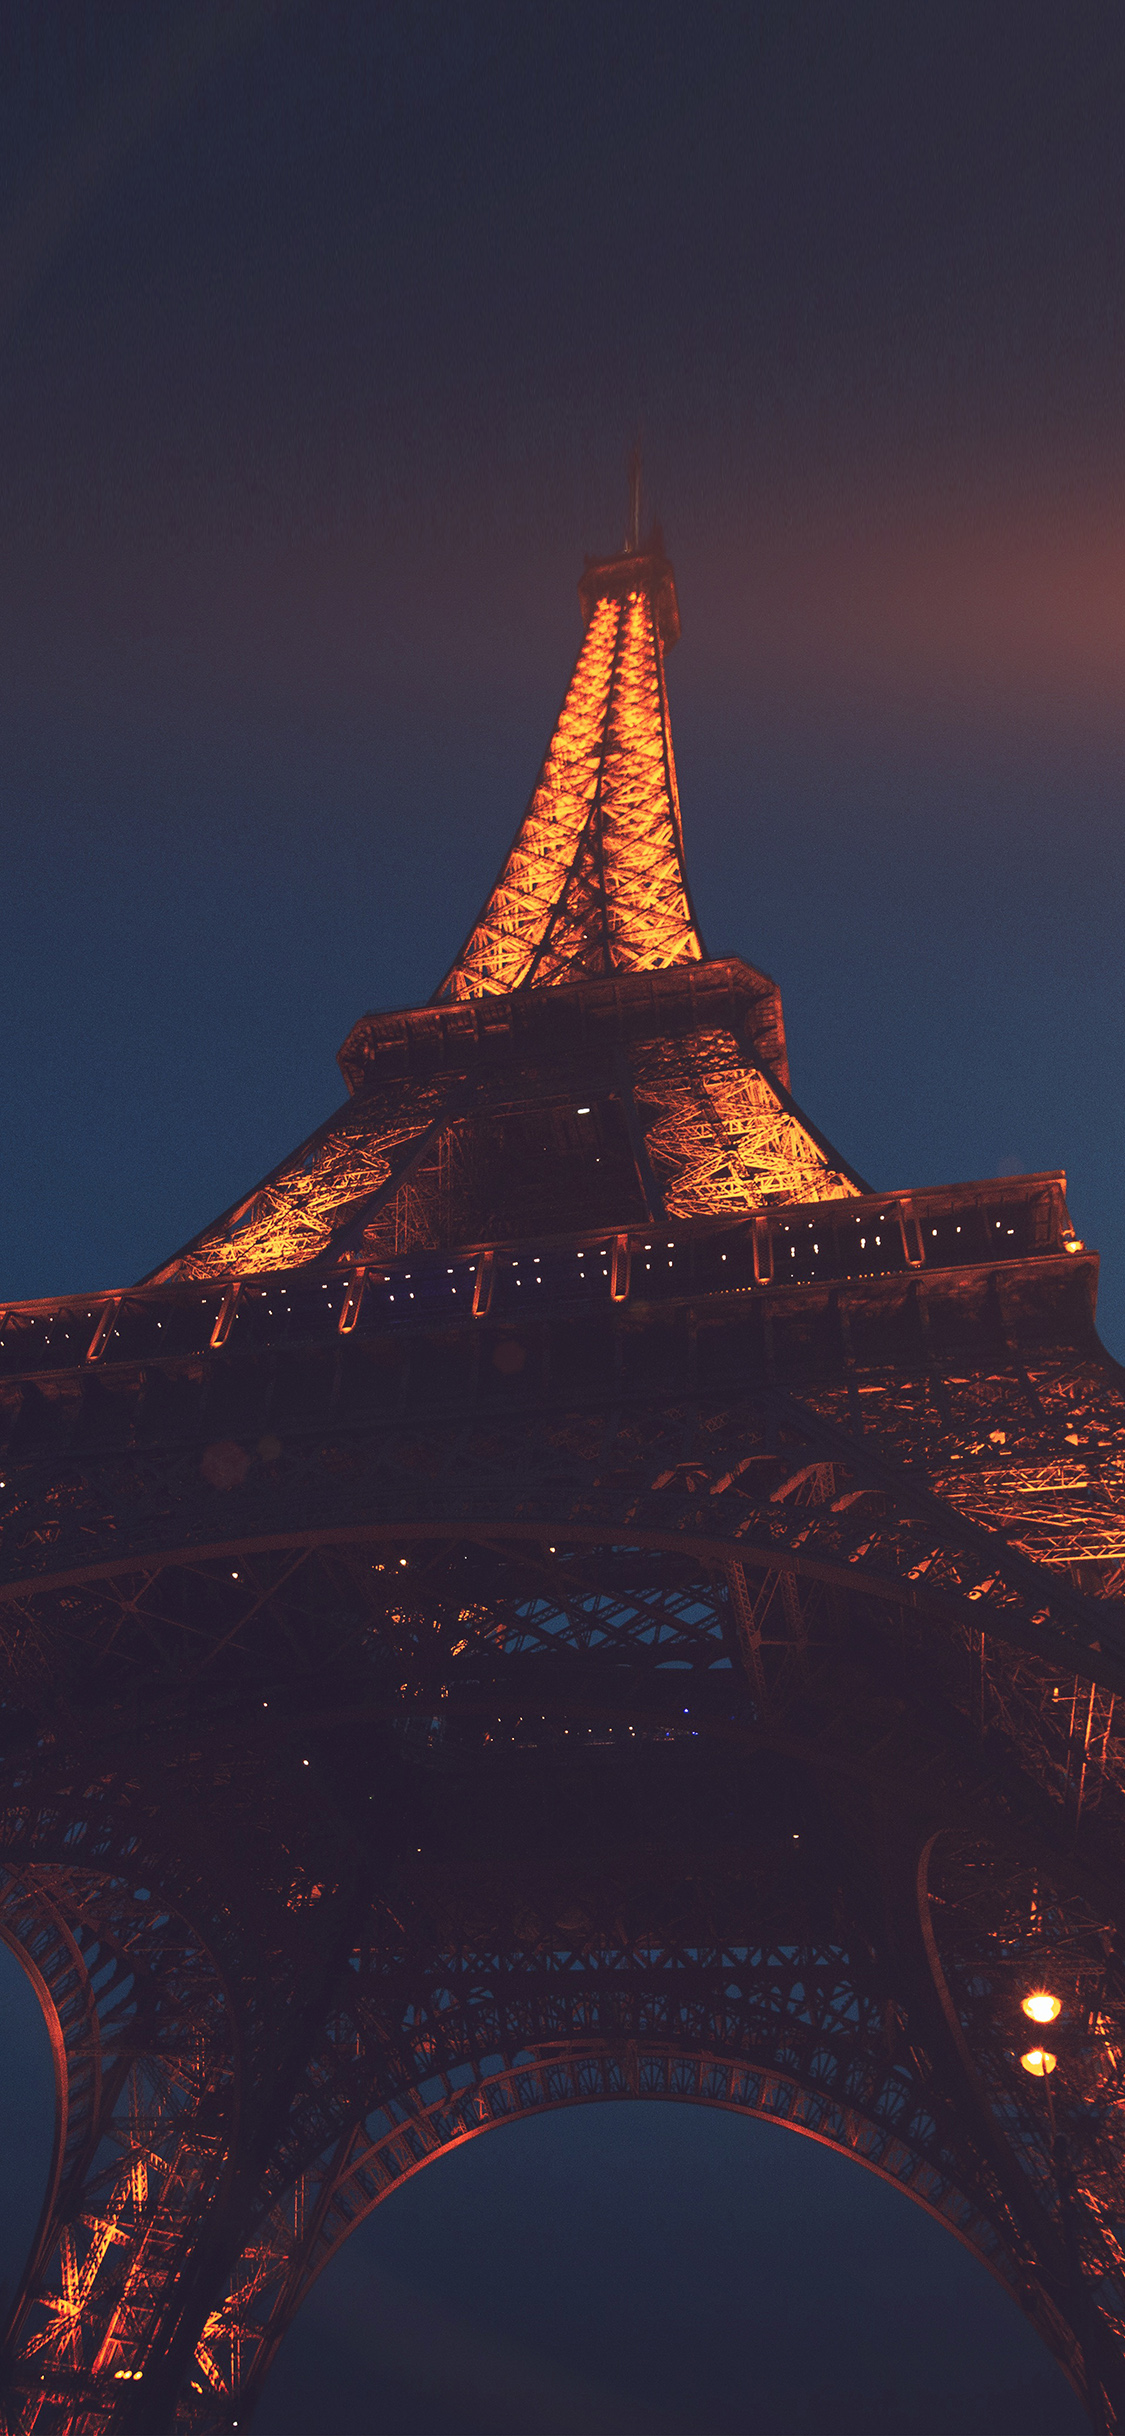 Iphonexpapers Com Iphone X Wallpaper Nh38 Eiffel Tower Paris